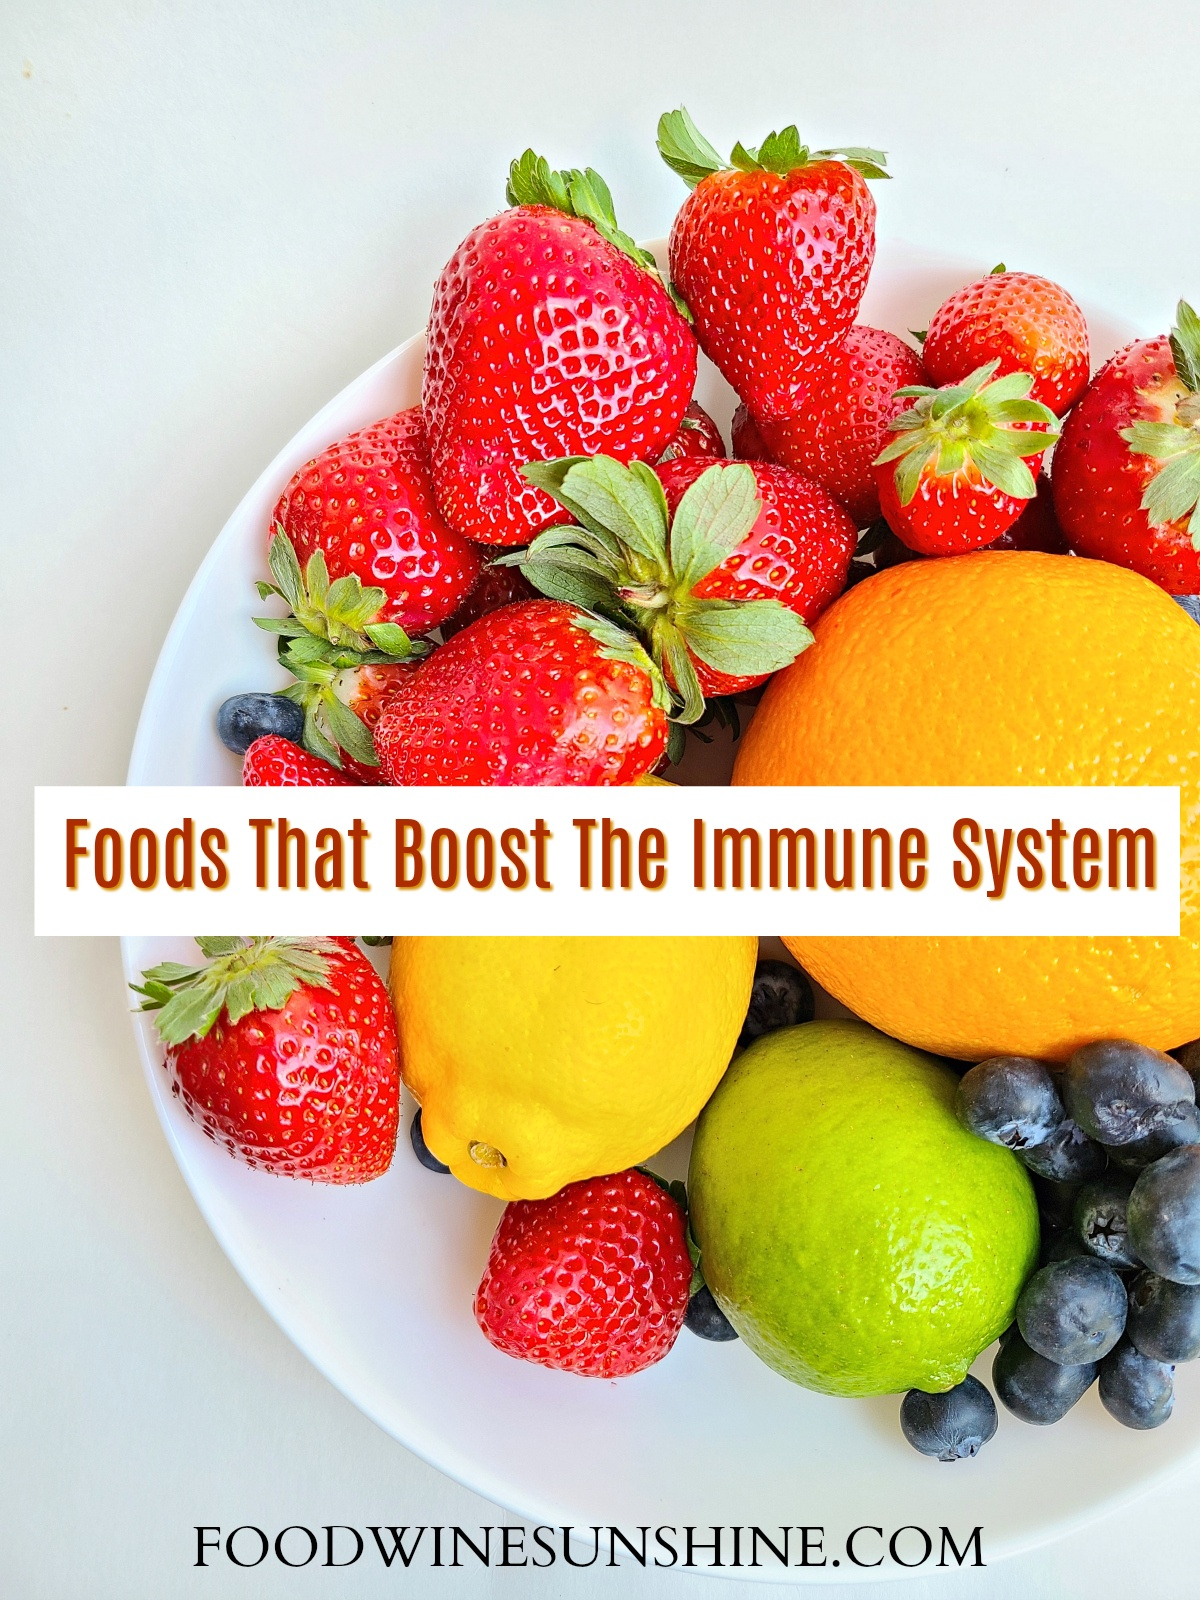 Fruit and Foods That Boost The Immune System